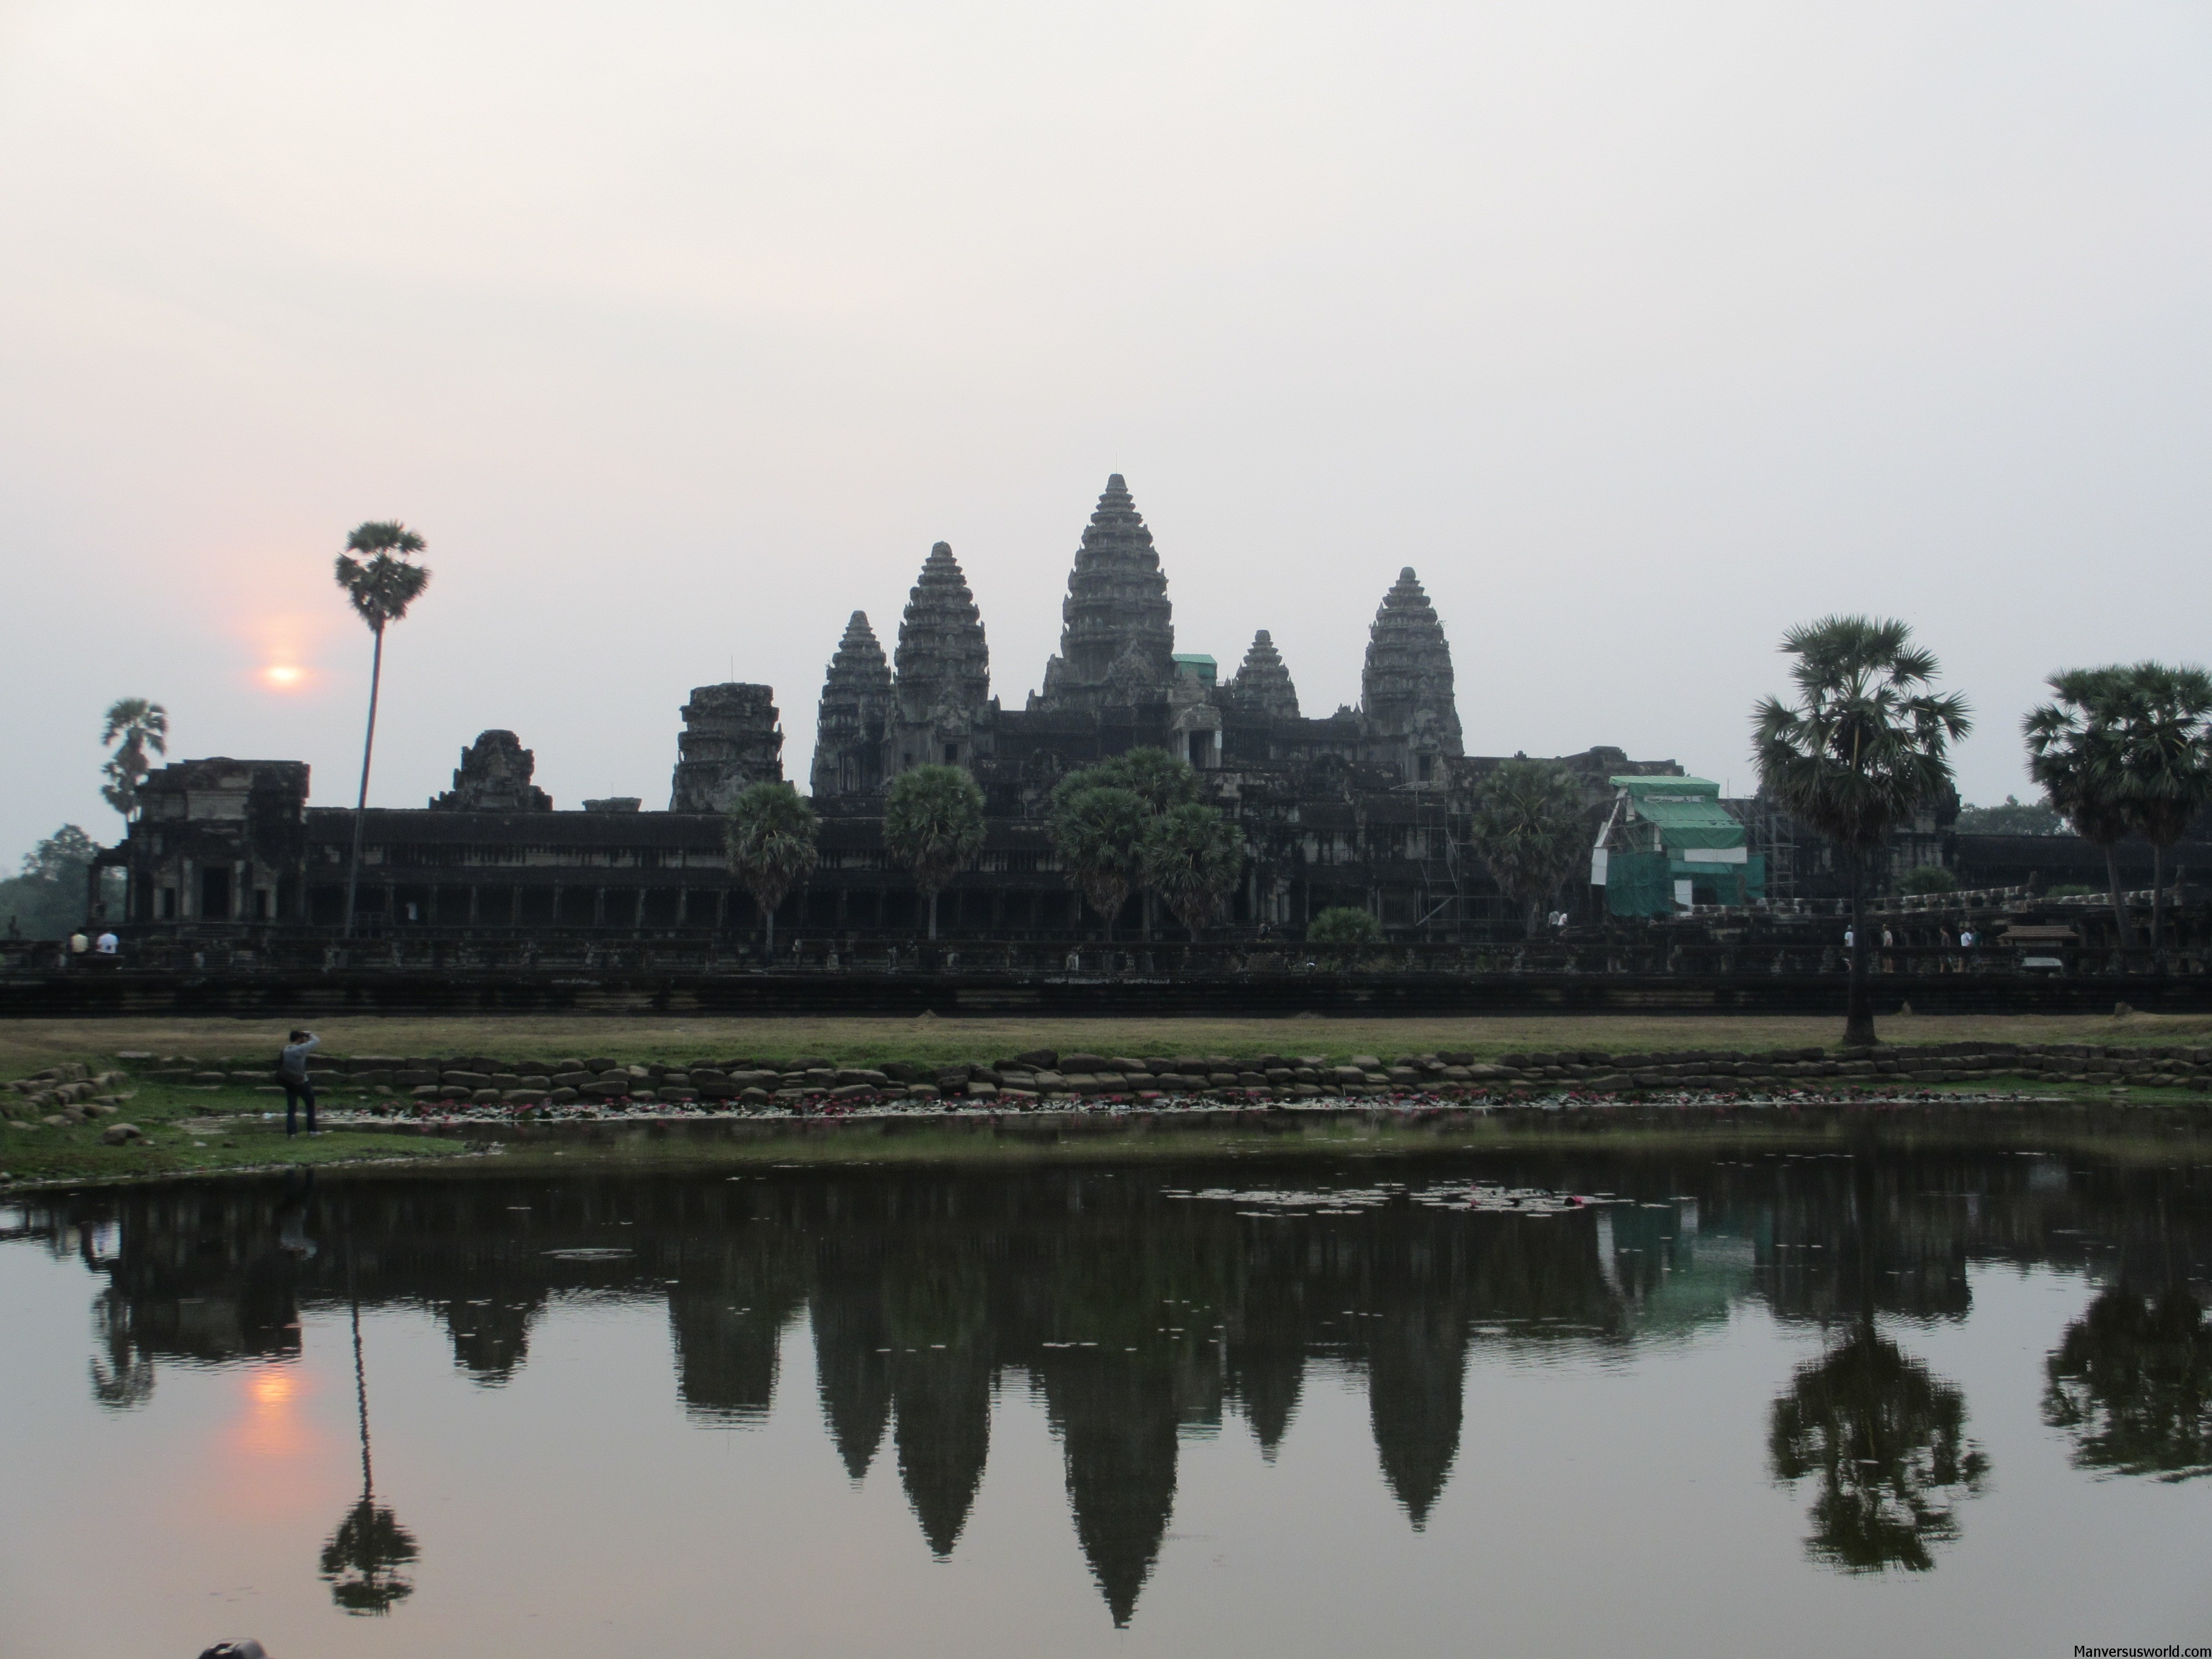 Angkor Wat at sun rise in all its glory